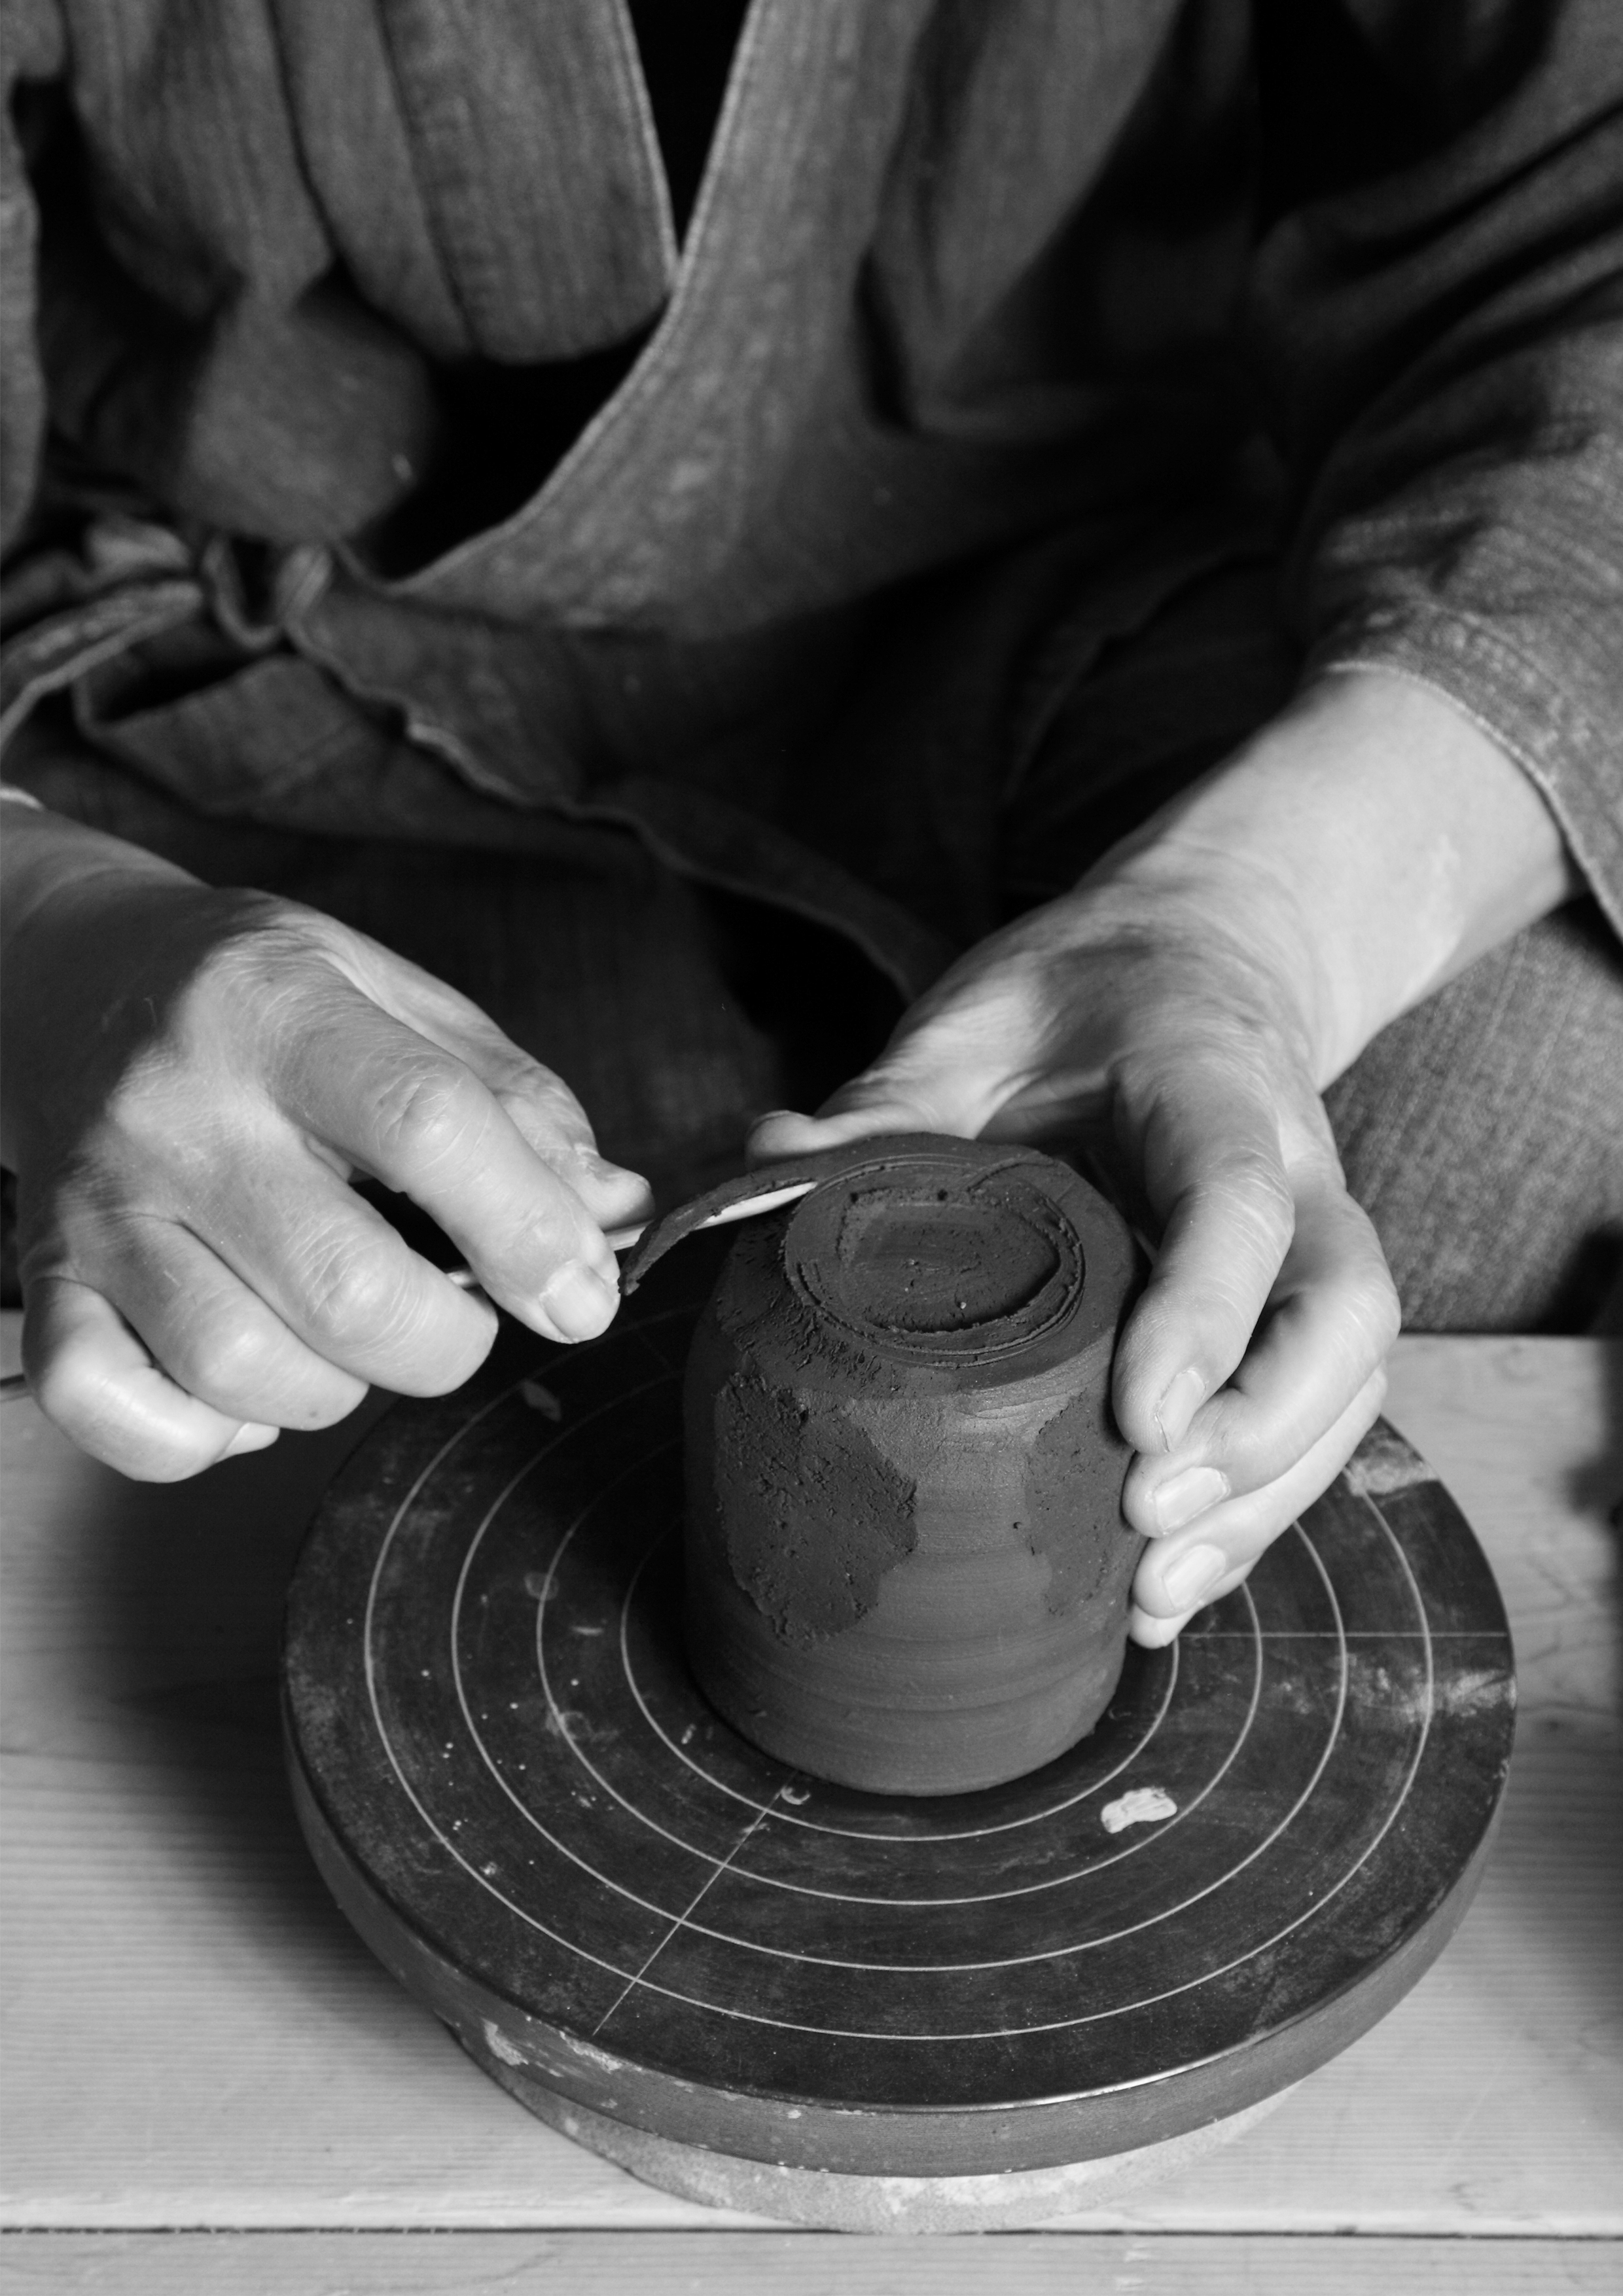 Kotaro Hiro  Artist Branding  _  Kotaro Hiro is a pottery artist from Tokyo Japan. Having high dedication to the world of Japanese ceramic houseware. Japan is one country that has an old ceramic tradition in the world.